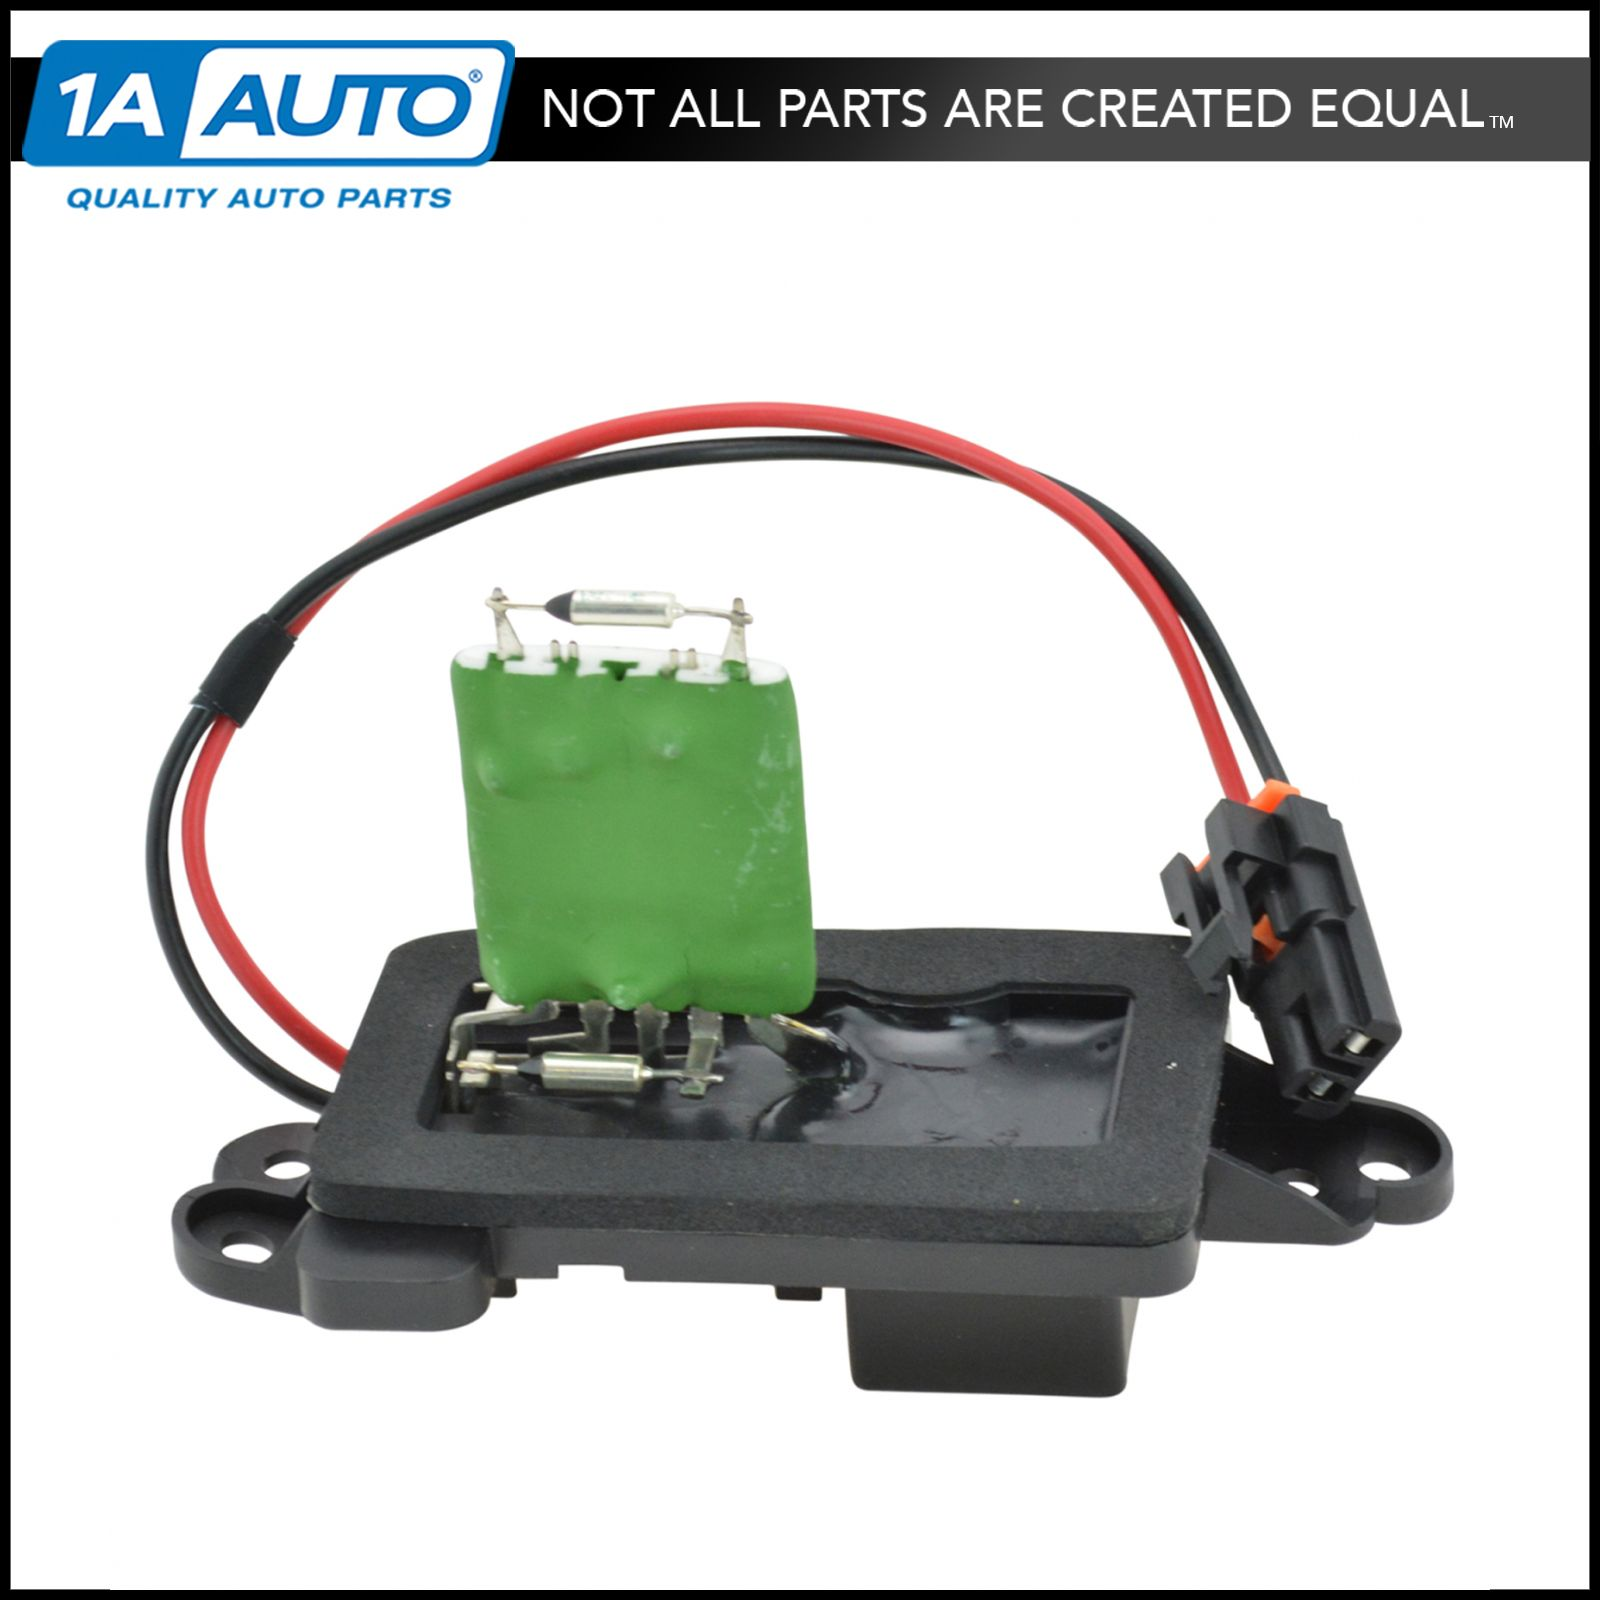 A/C Heater Blower Motor Resistor NEW for Buick Chevy GMC Isuzu Olds w/ Manual AC 191213385166 | eBay